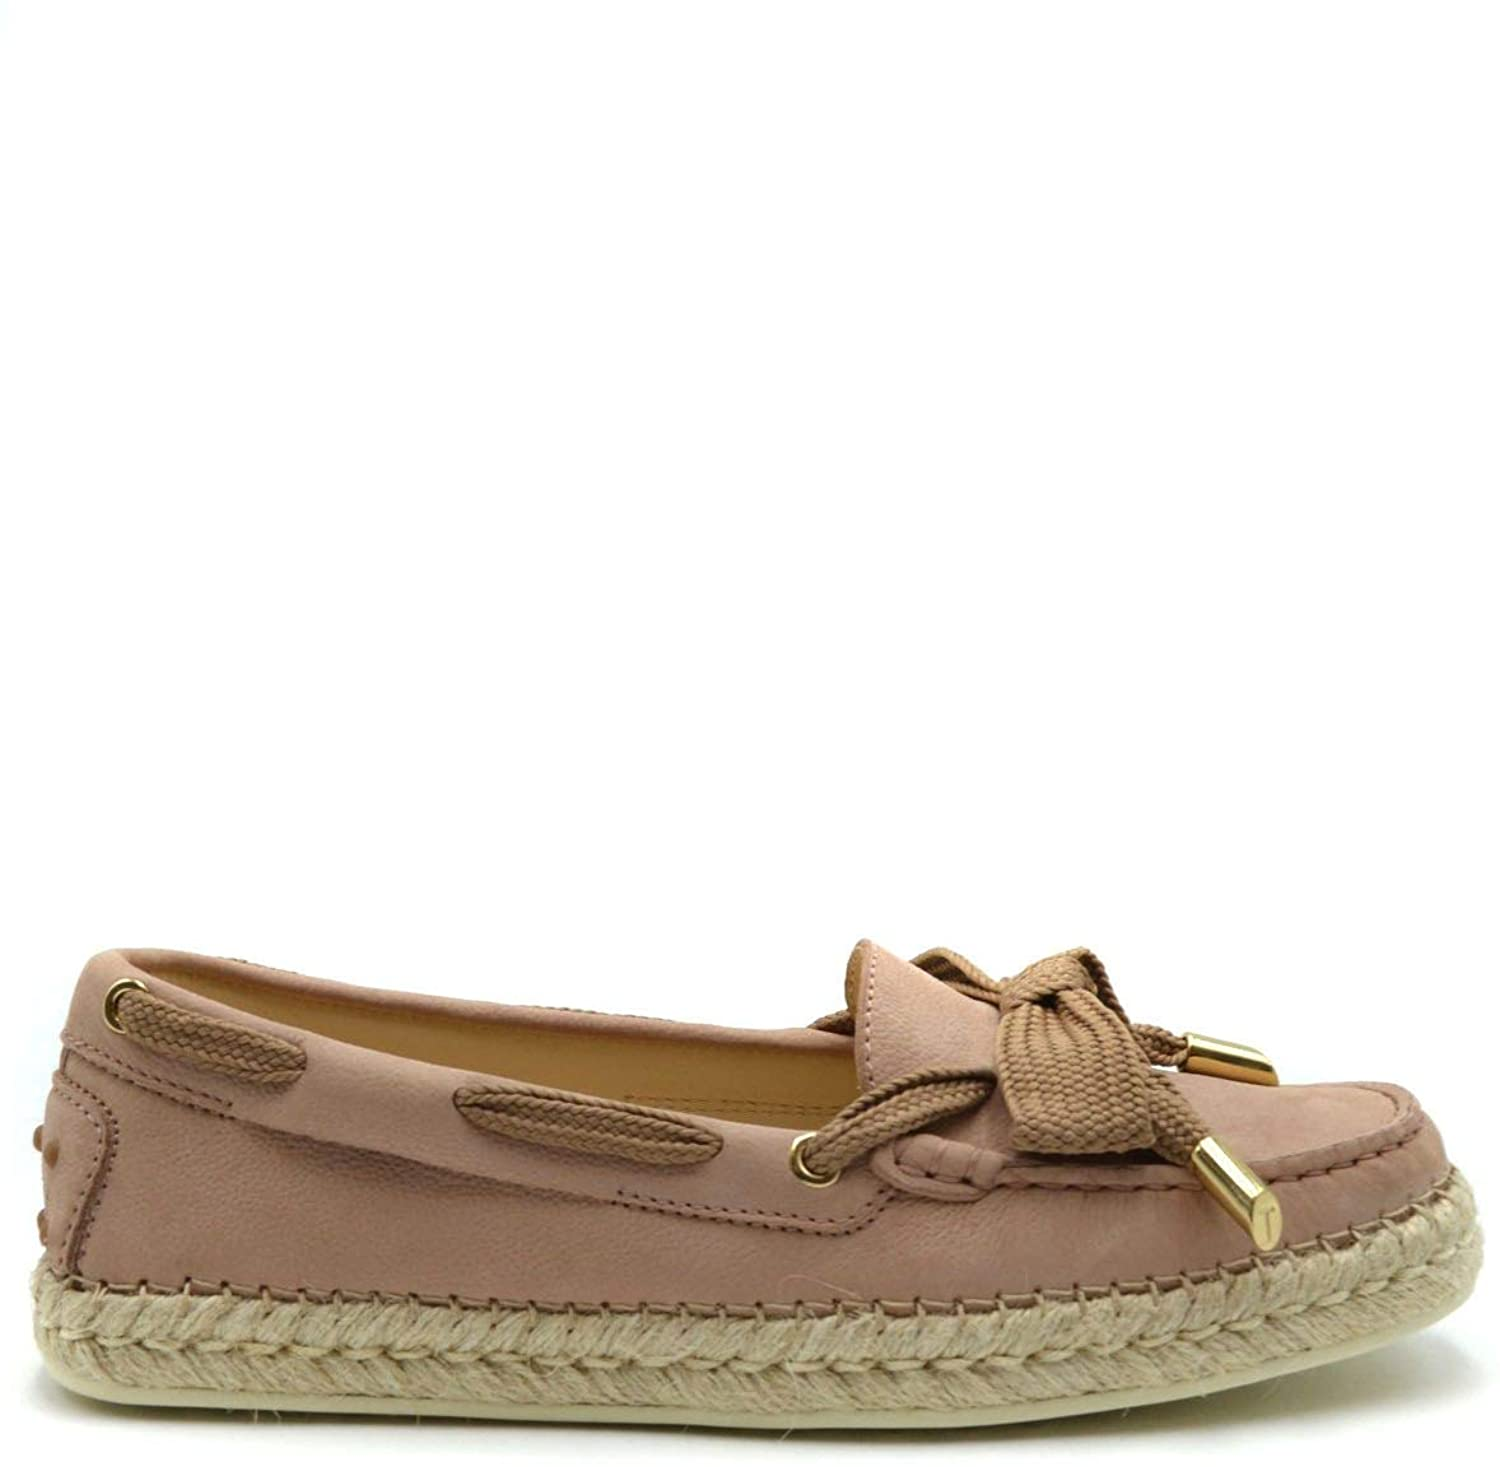 Tods Luxury Fashion Woman MCBI38933 Pink Suede Loafers | Season Outlet